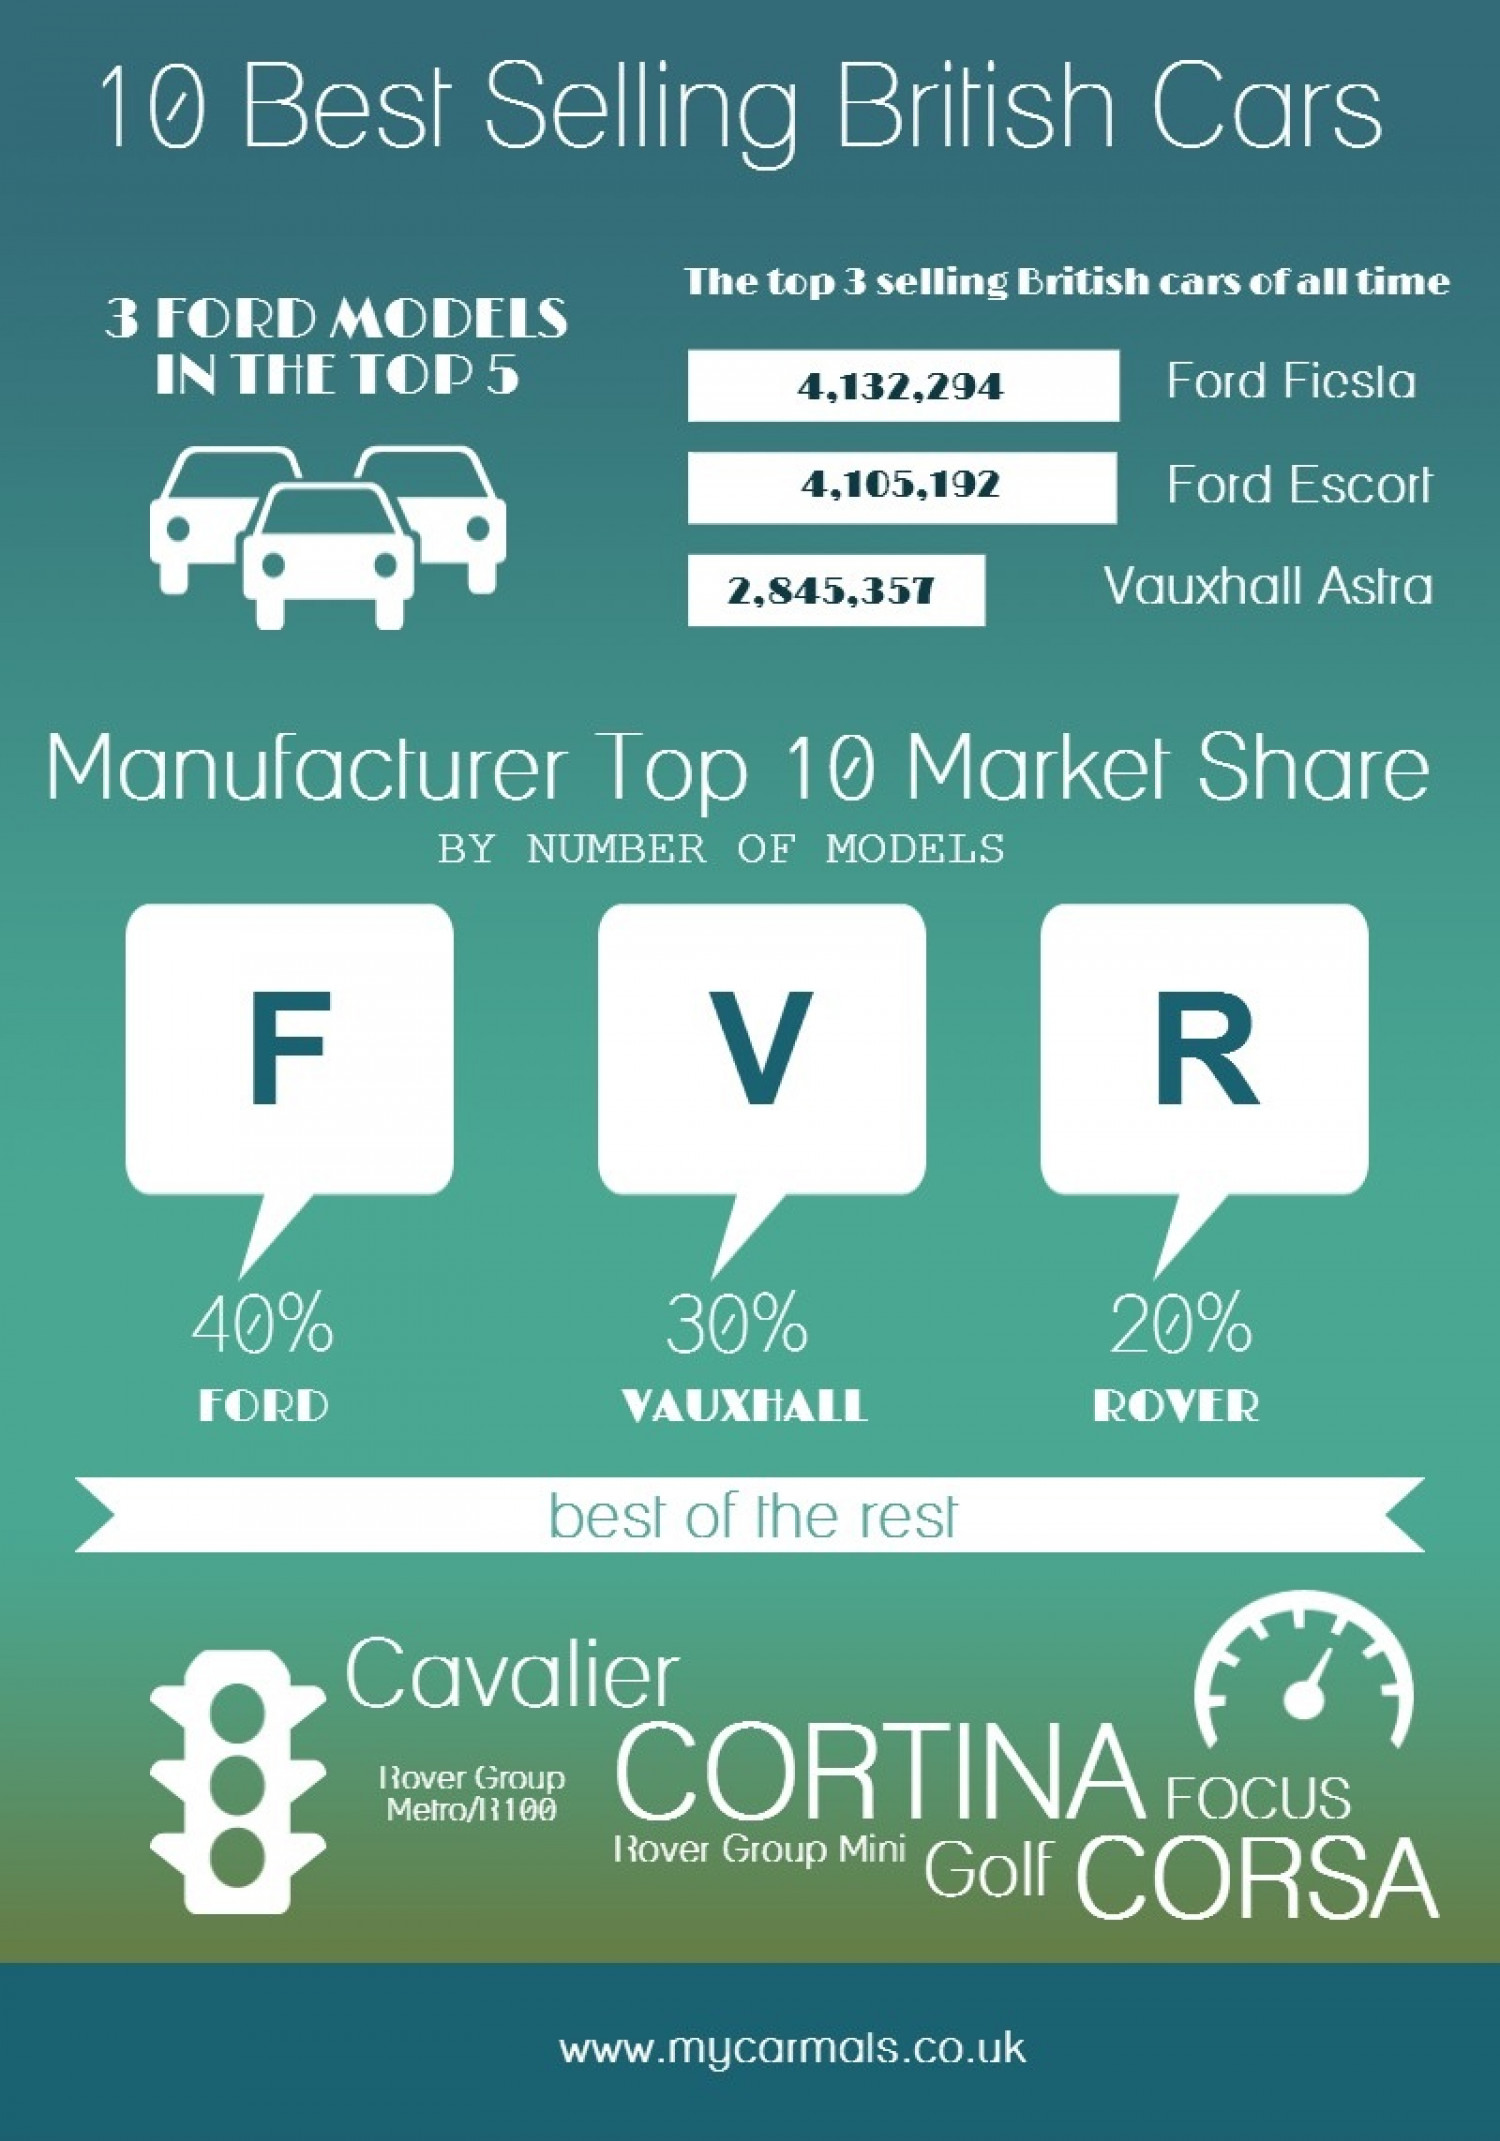 Top 10 British Selling Cars Of All Time Infographic